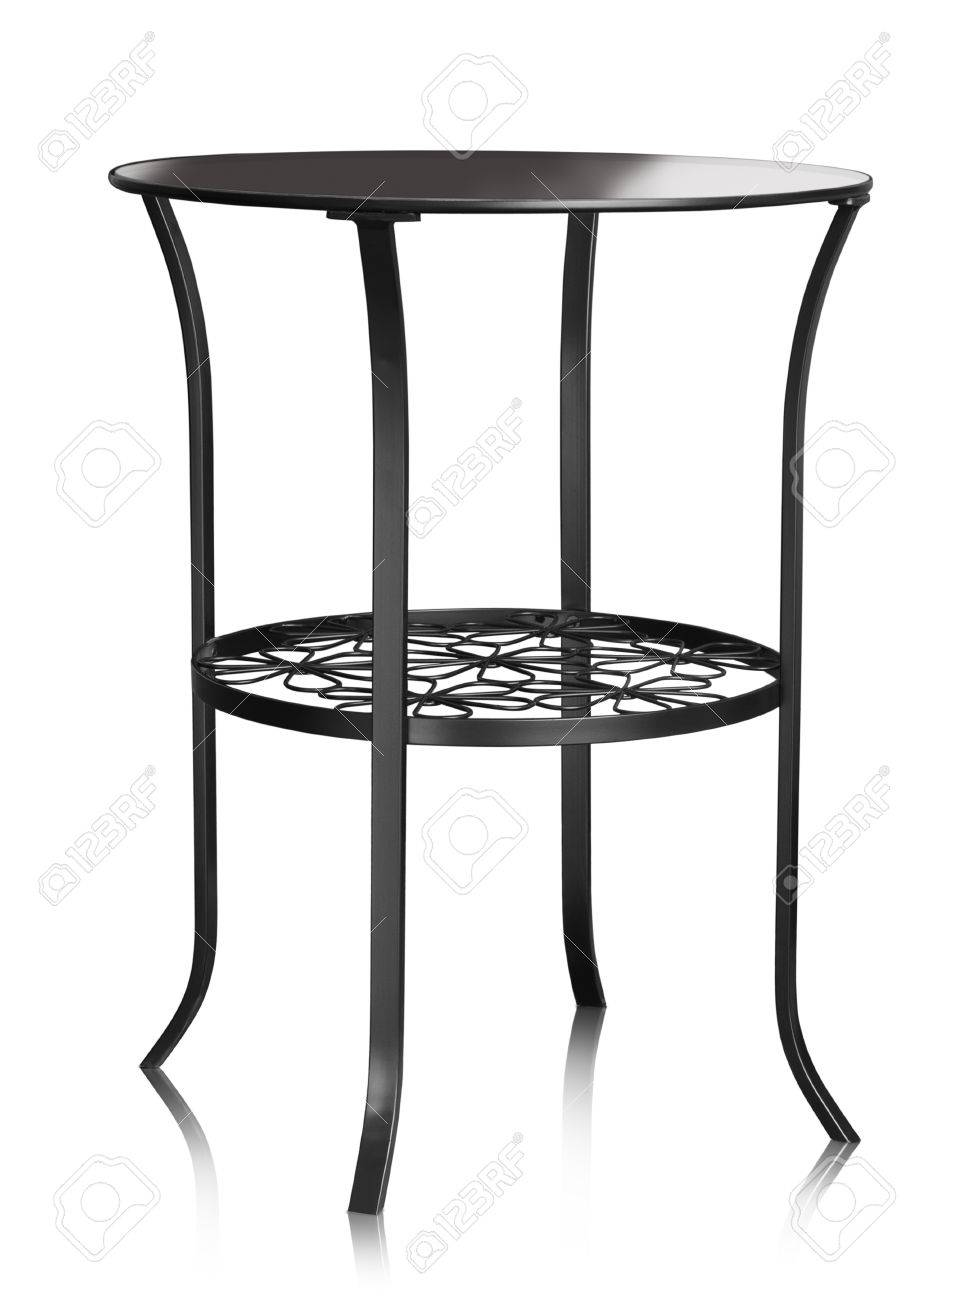 Coffee table made of metal and glass isolated on white Stock Photo - 24745672